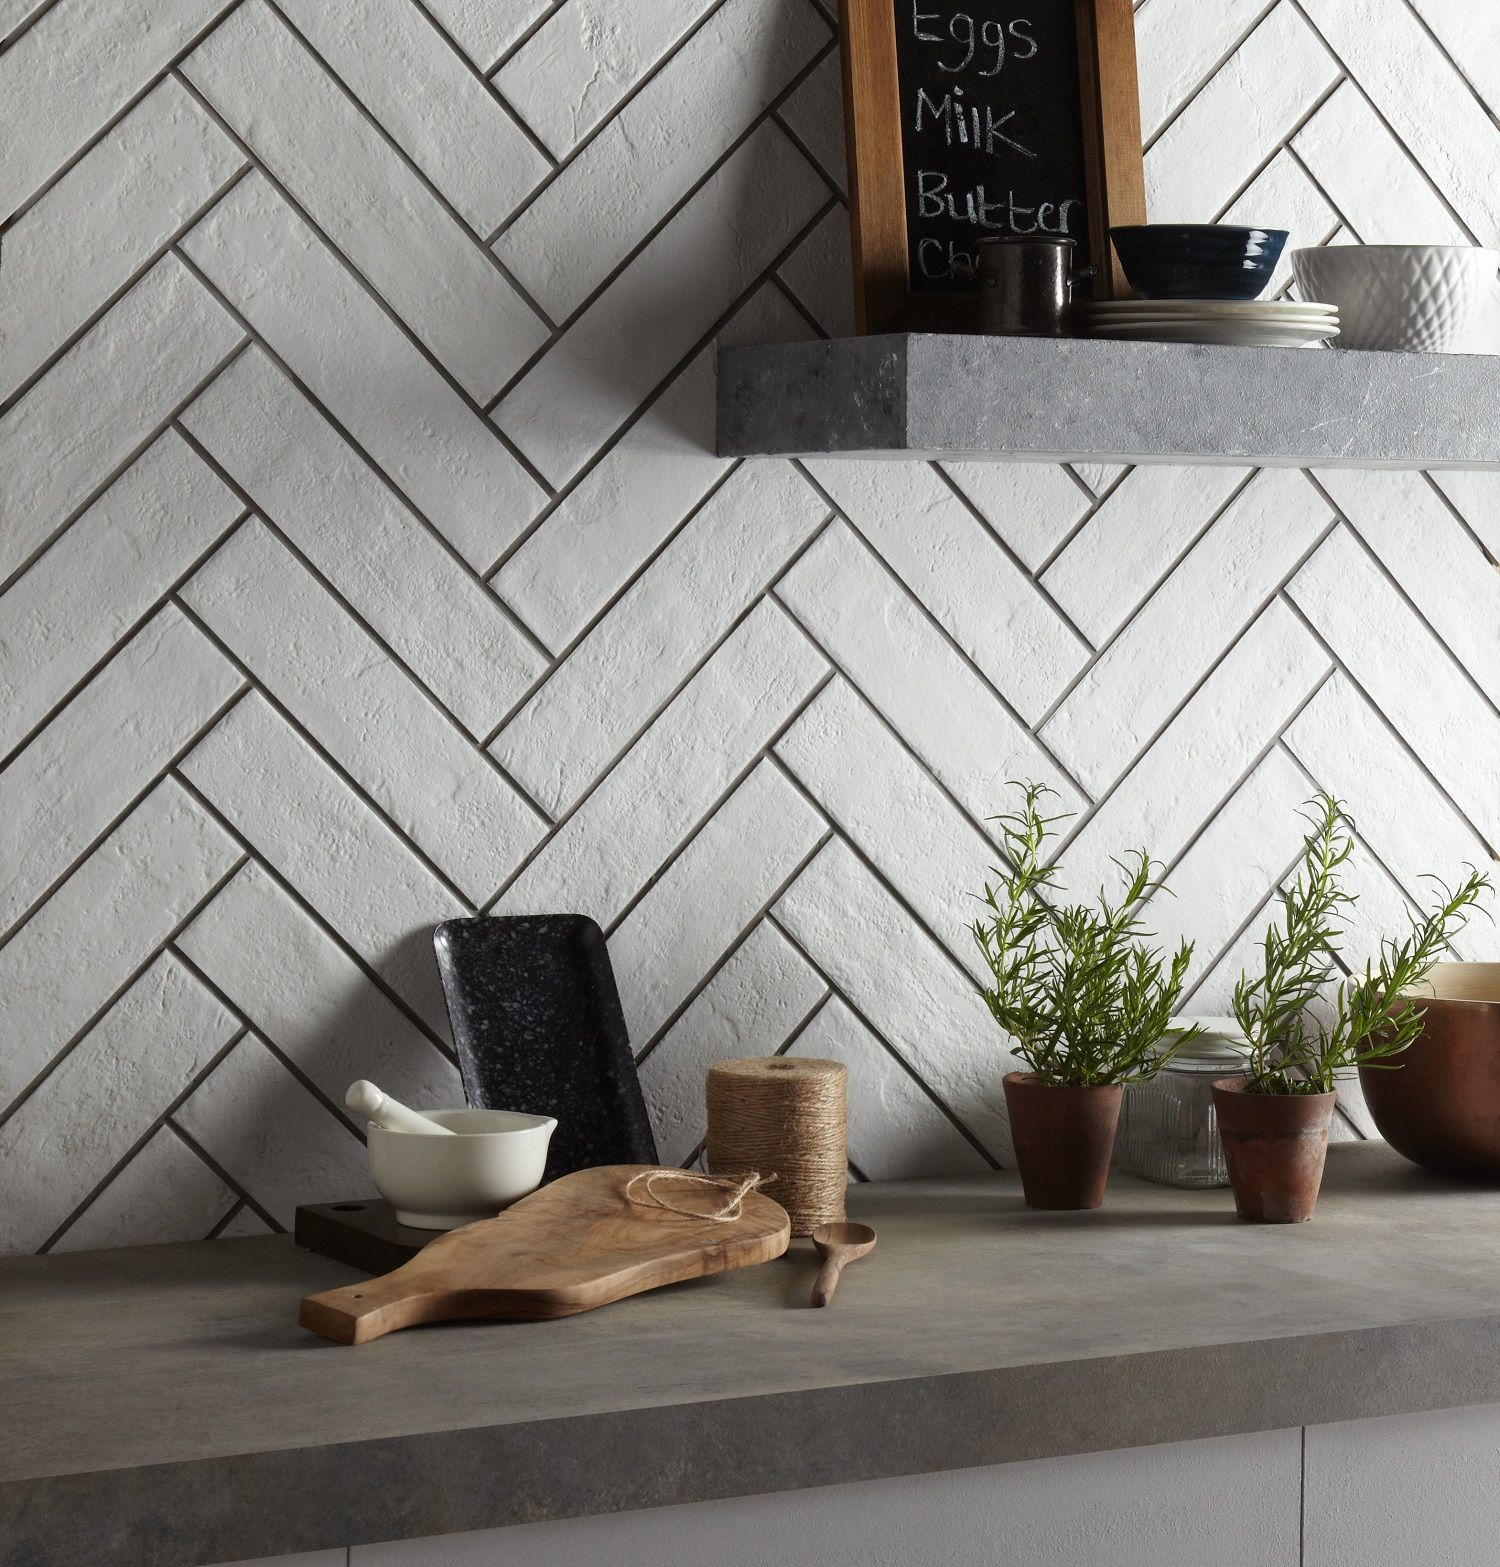 Style Your Home With Brick Effect Tiles Kitchens Review White Brick Tiles Brick Effect Tiles Brick Tiles